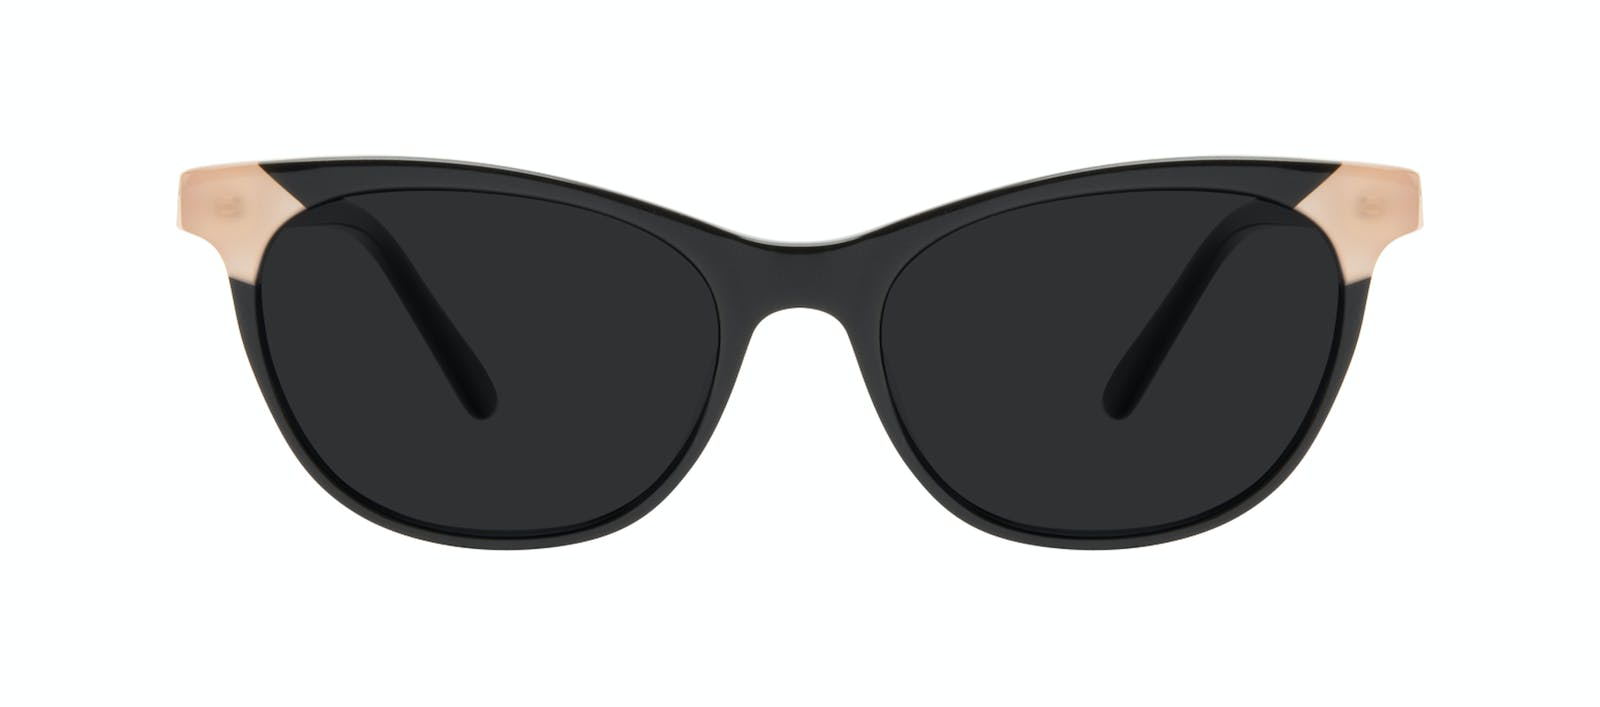 c029ebb6d0 Affordable Fashion Glasses Cat Eye Sunglasses Women Witty Black Ivory Front